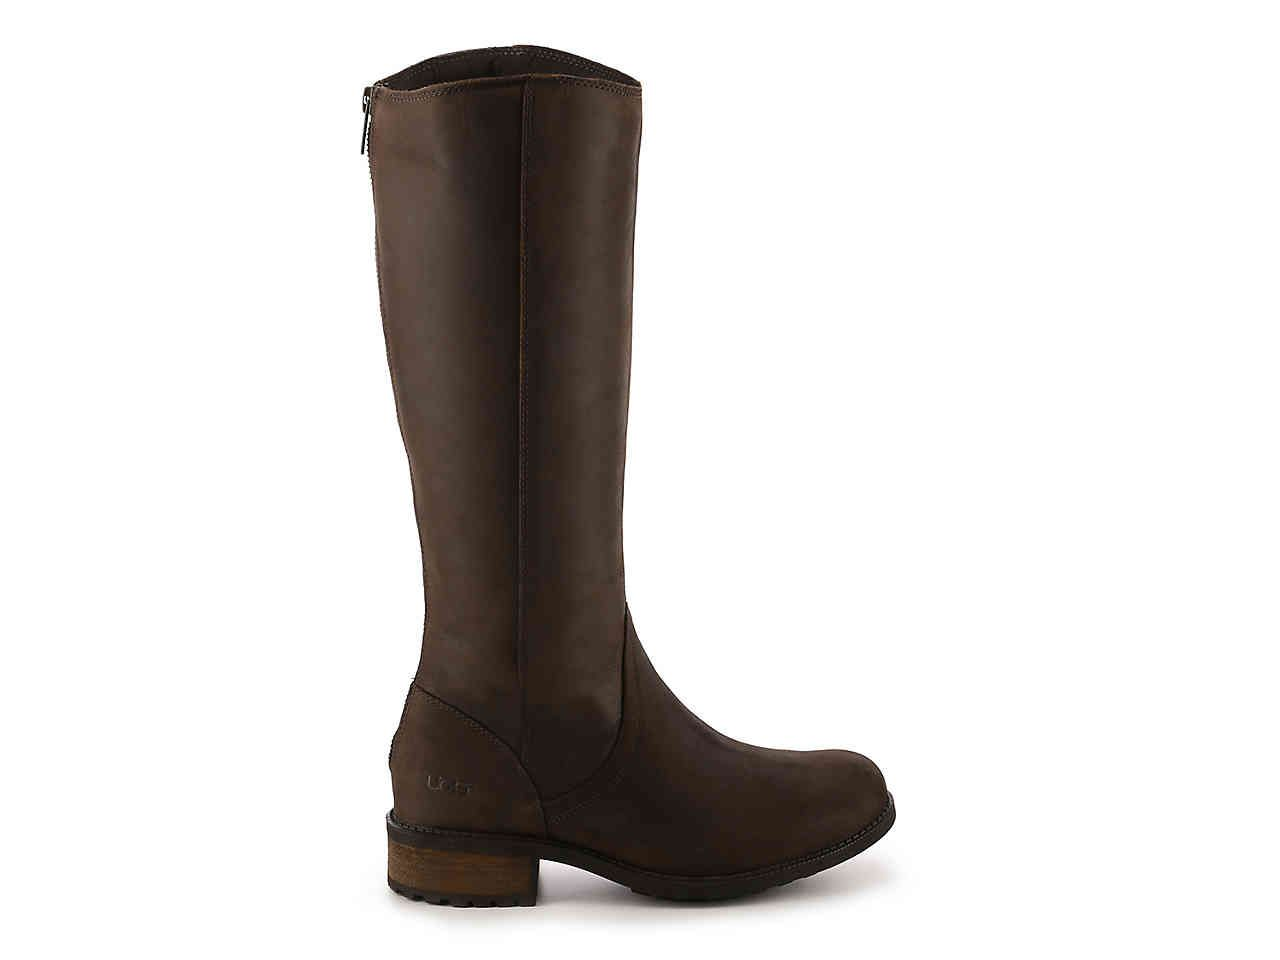 UGG Australia Seldon Riding Boot Women's Shoes | DSW